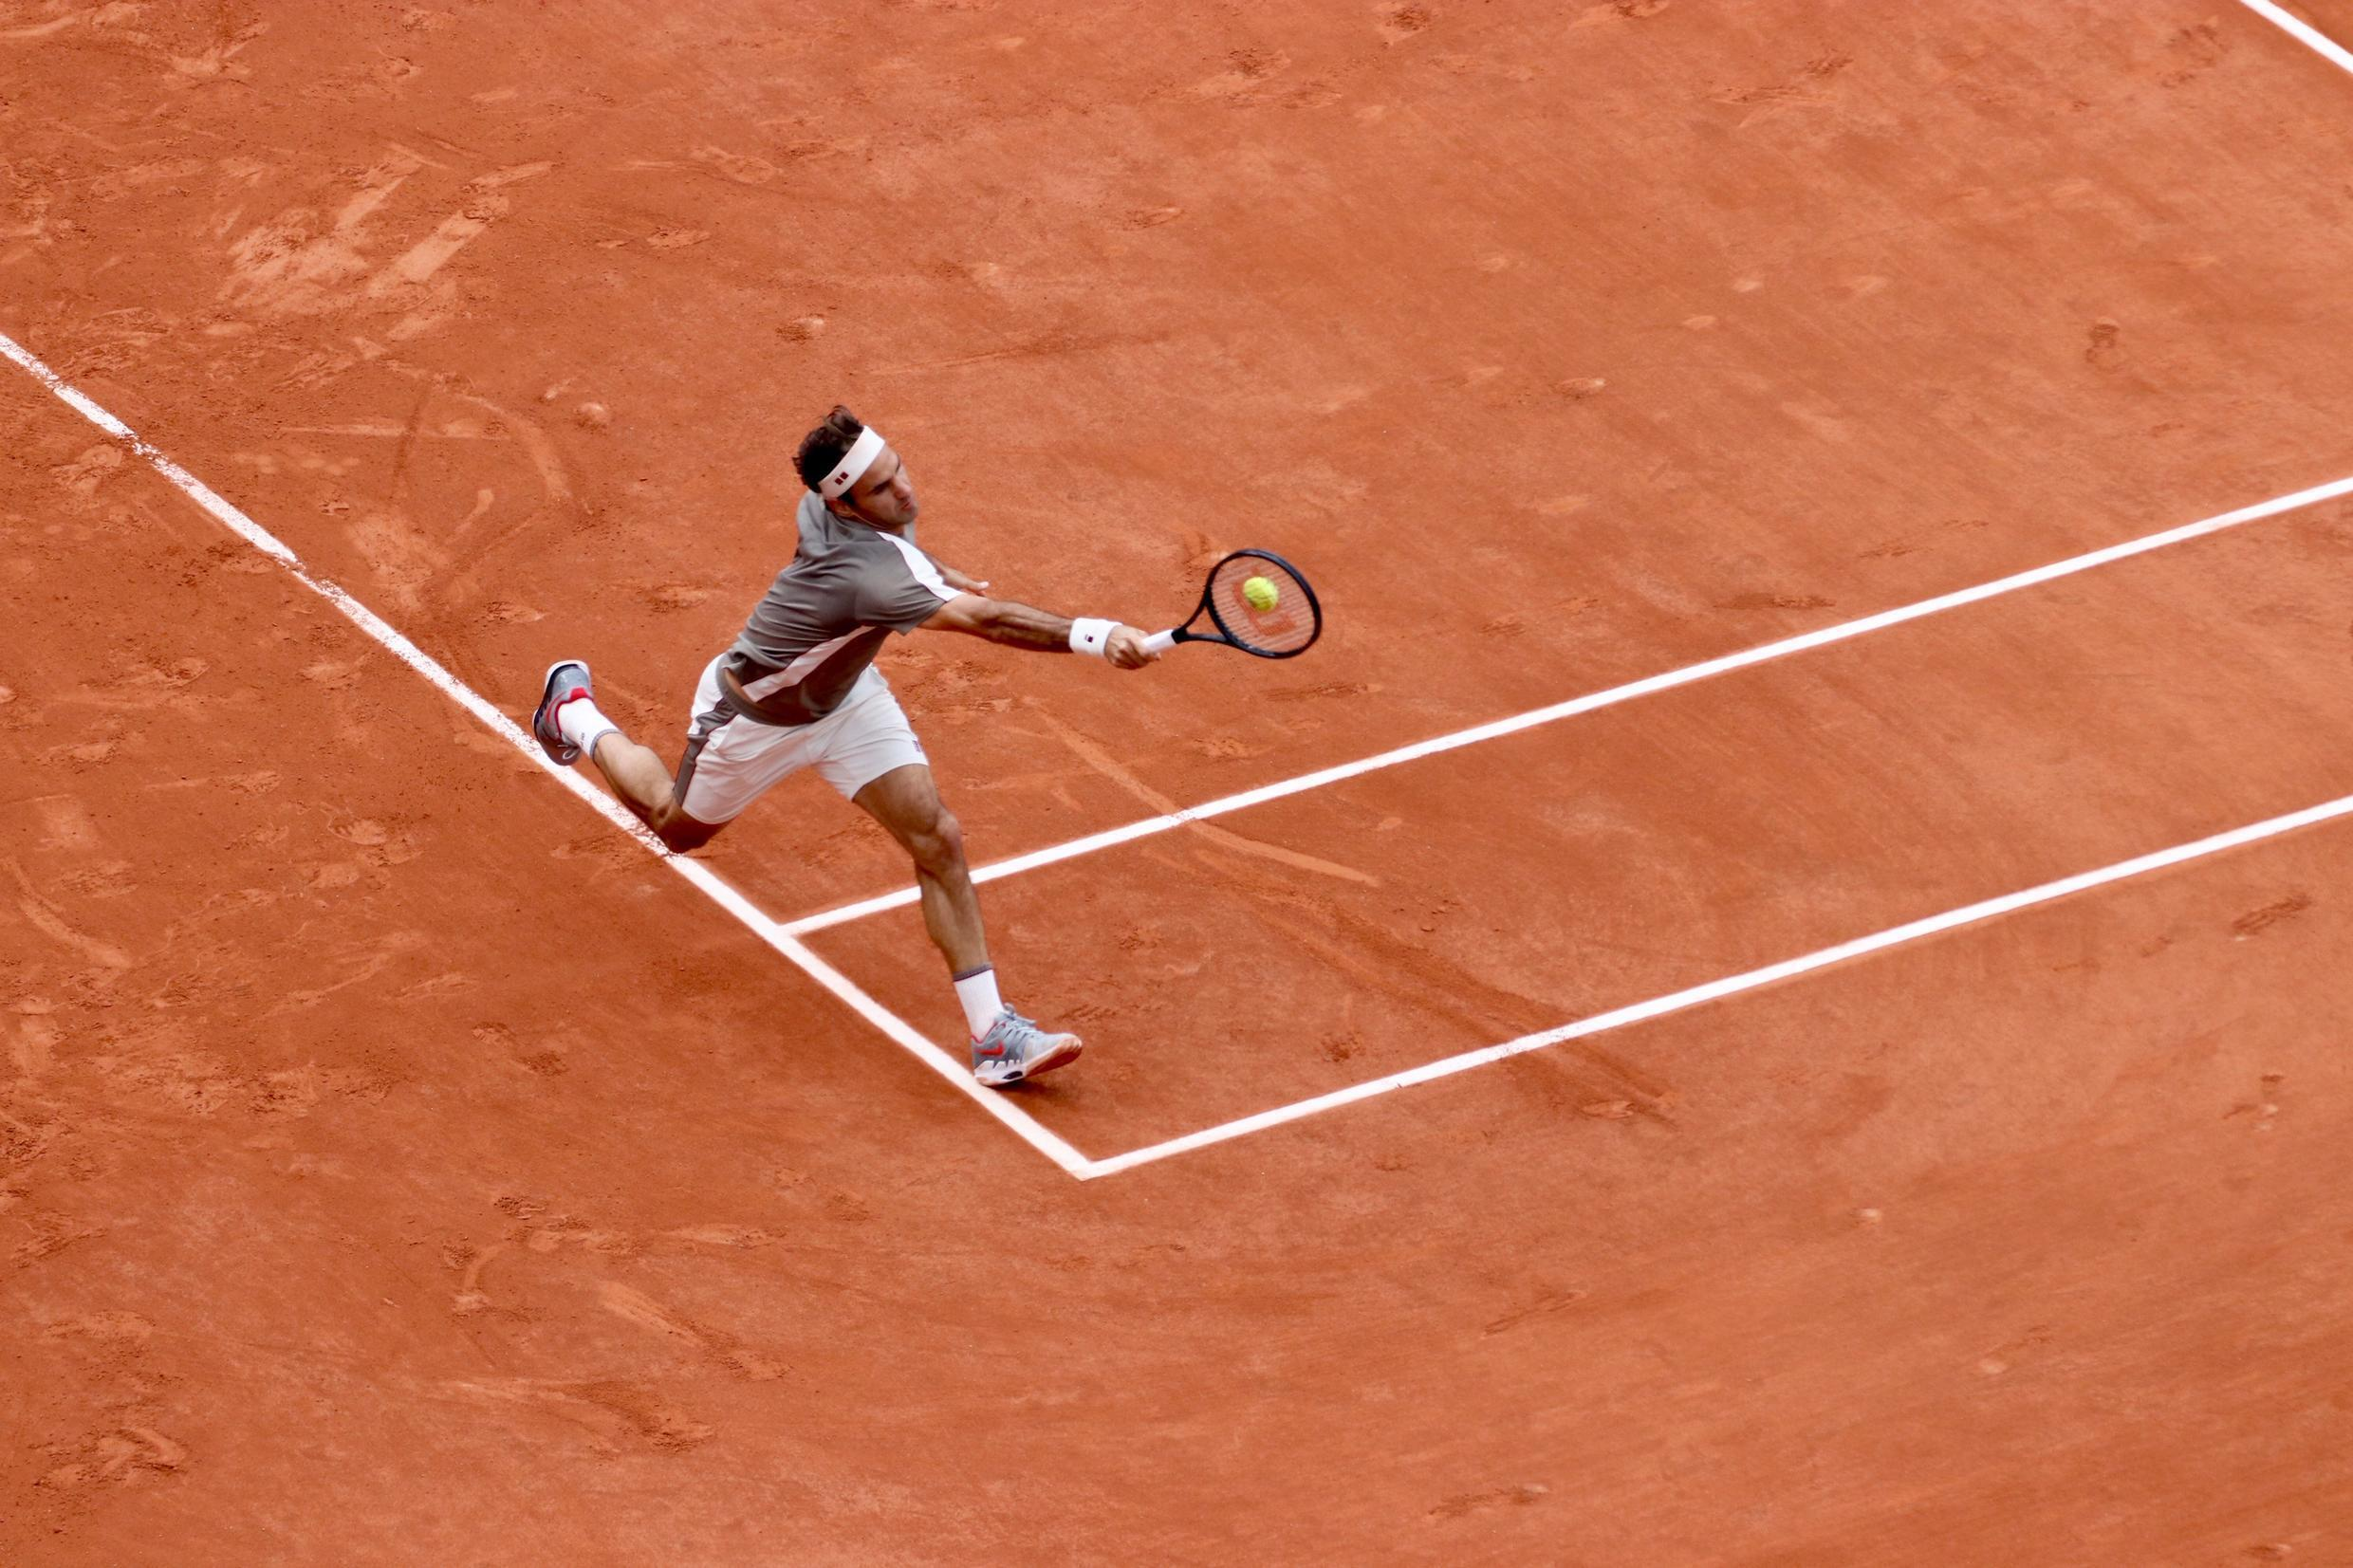 Roger Federer last played at the French Open in 2015.